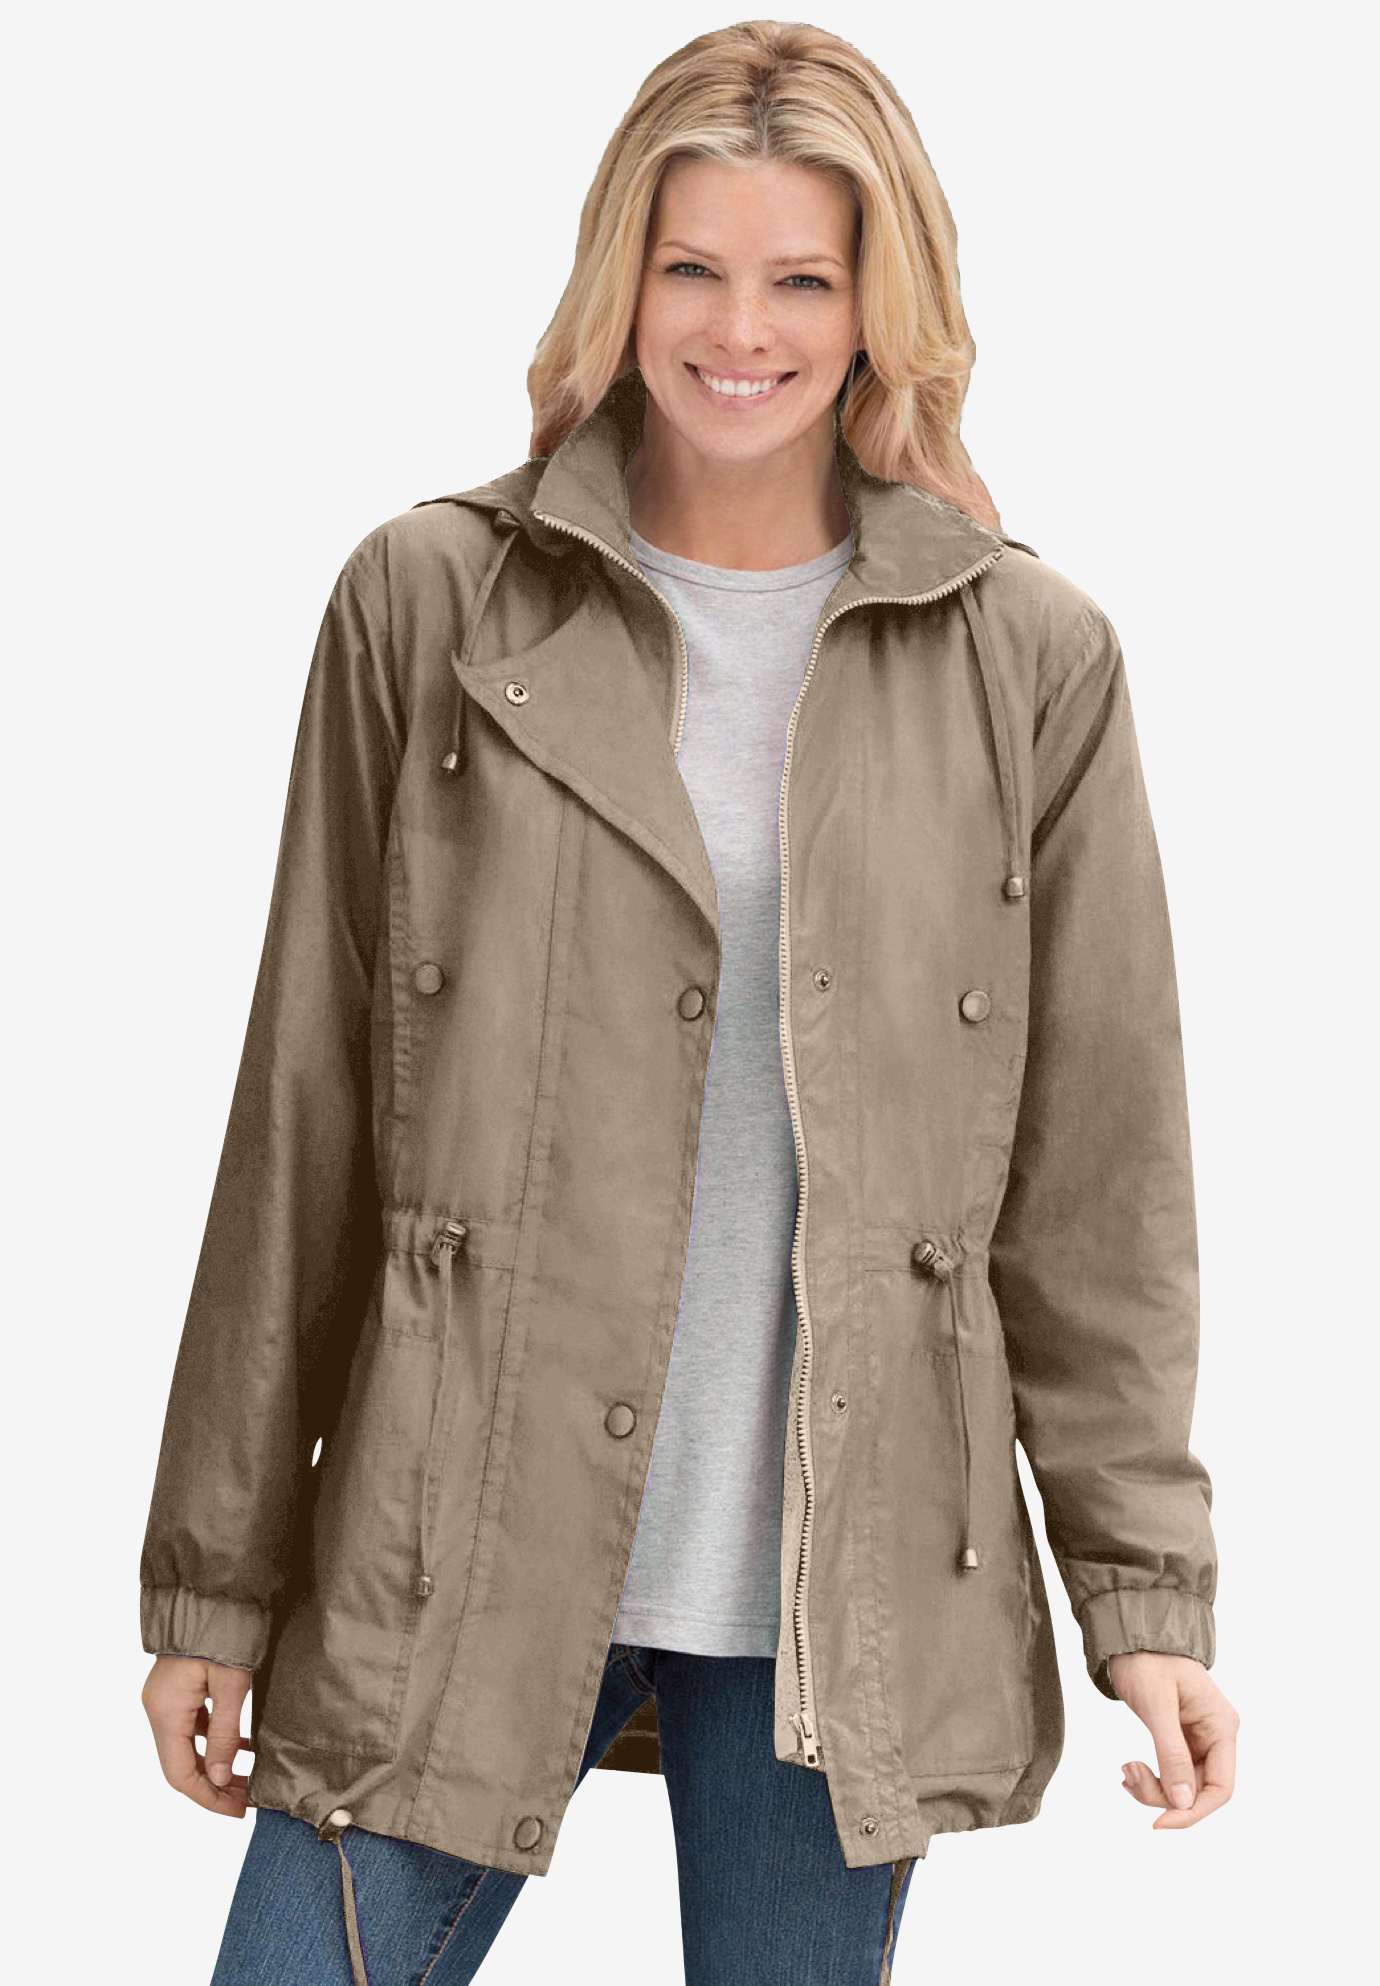 Jacket, anorak in weather-resistant Taslon® with zip-out lining, BARK, hi-res